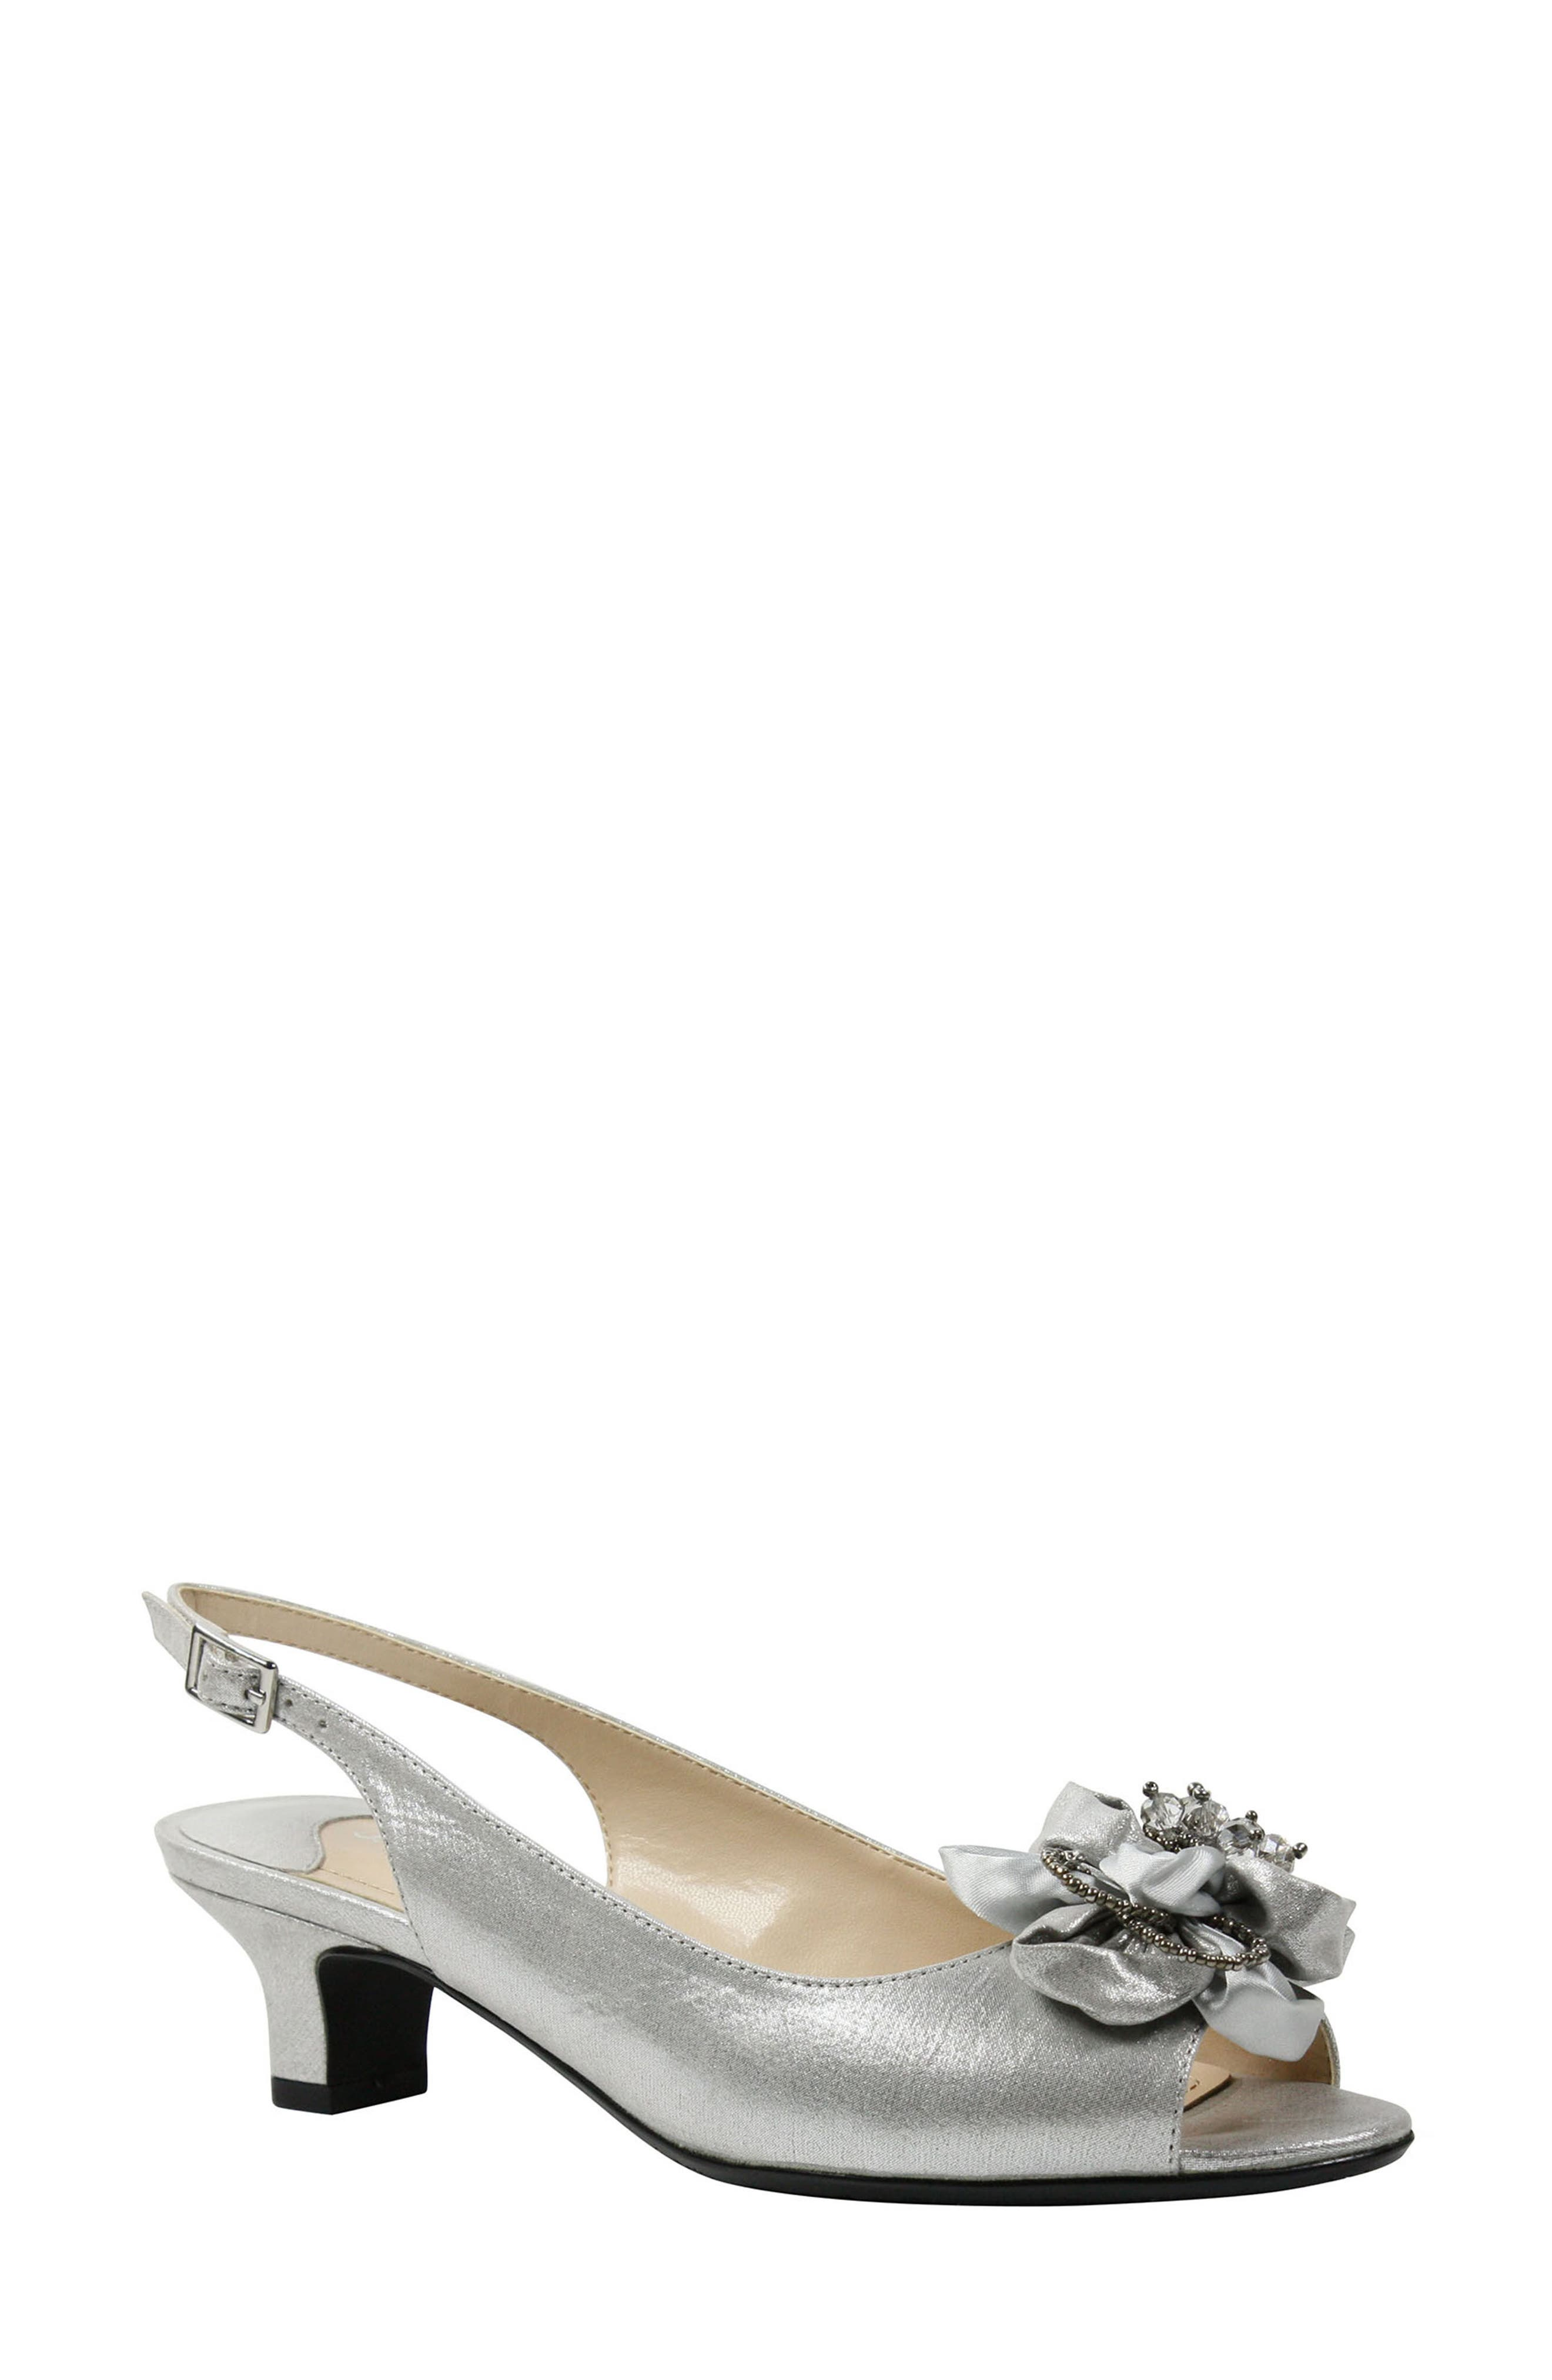 J. RENEÉ Leonelle Slingback Crystal Embellished Sandal, Main, color, SILVER SATIN